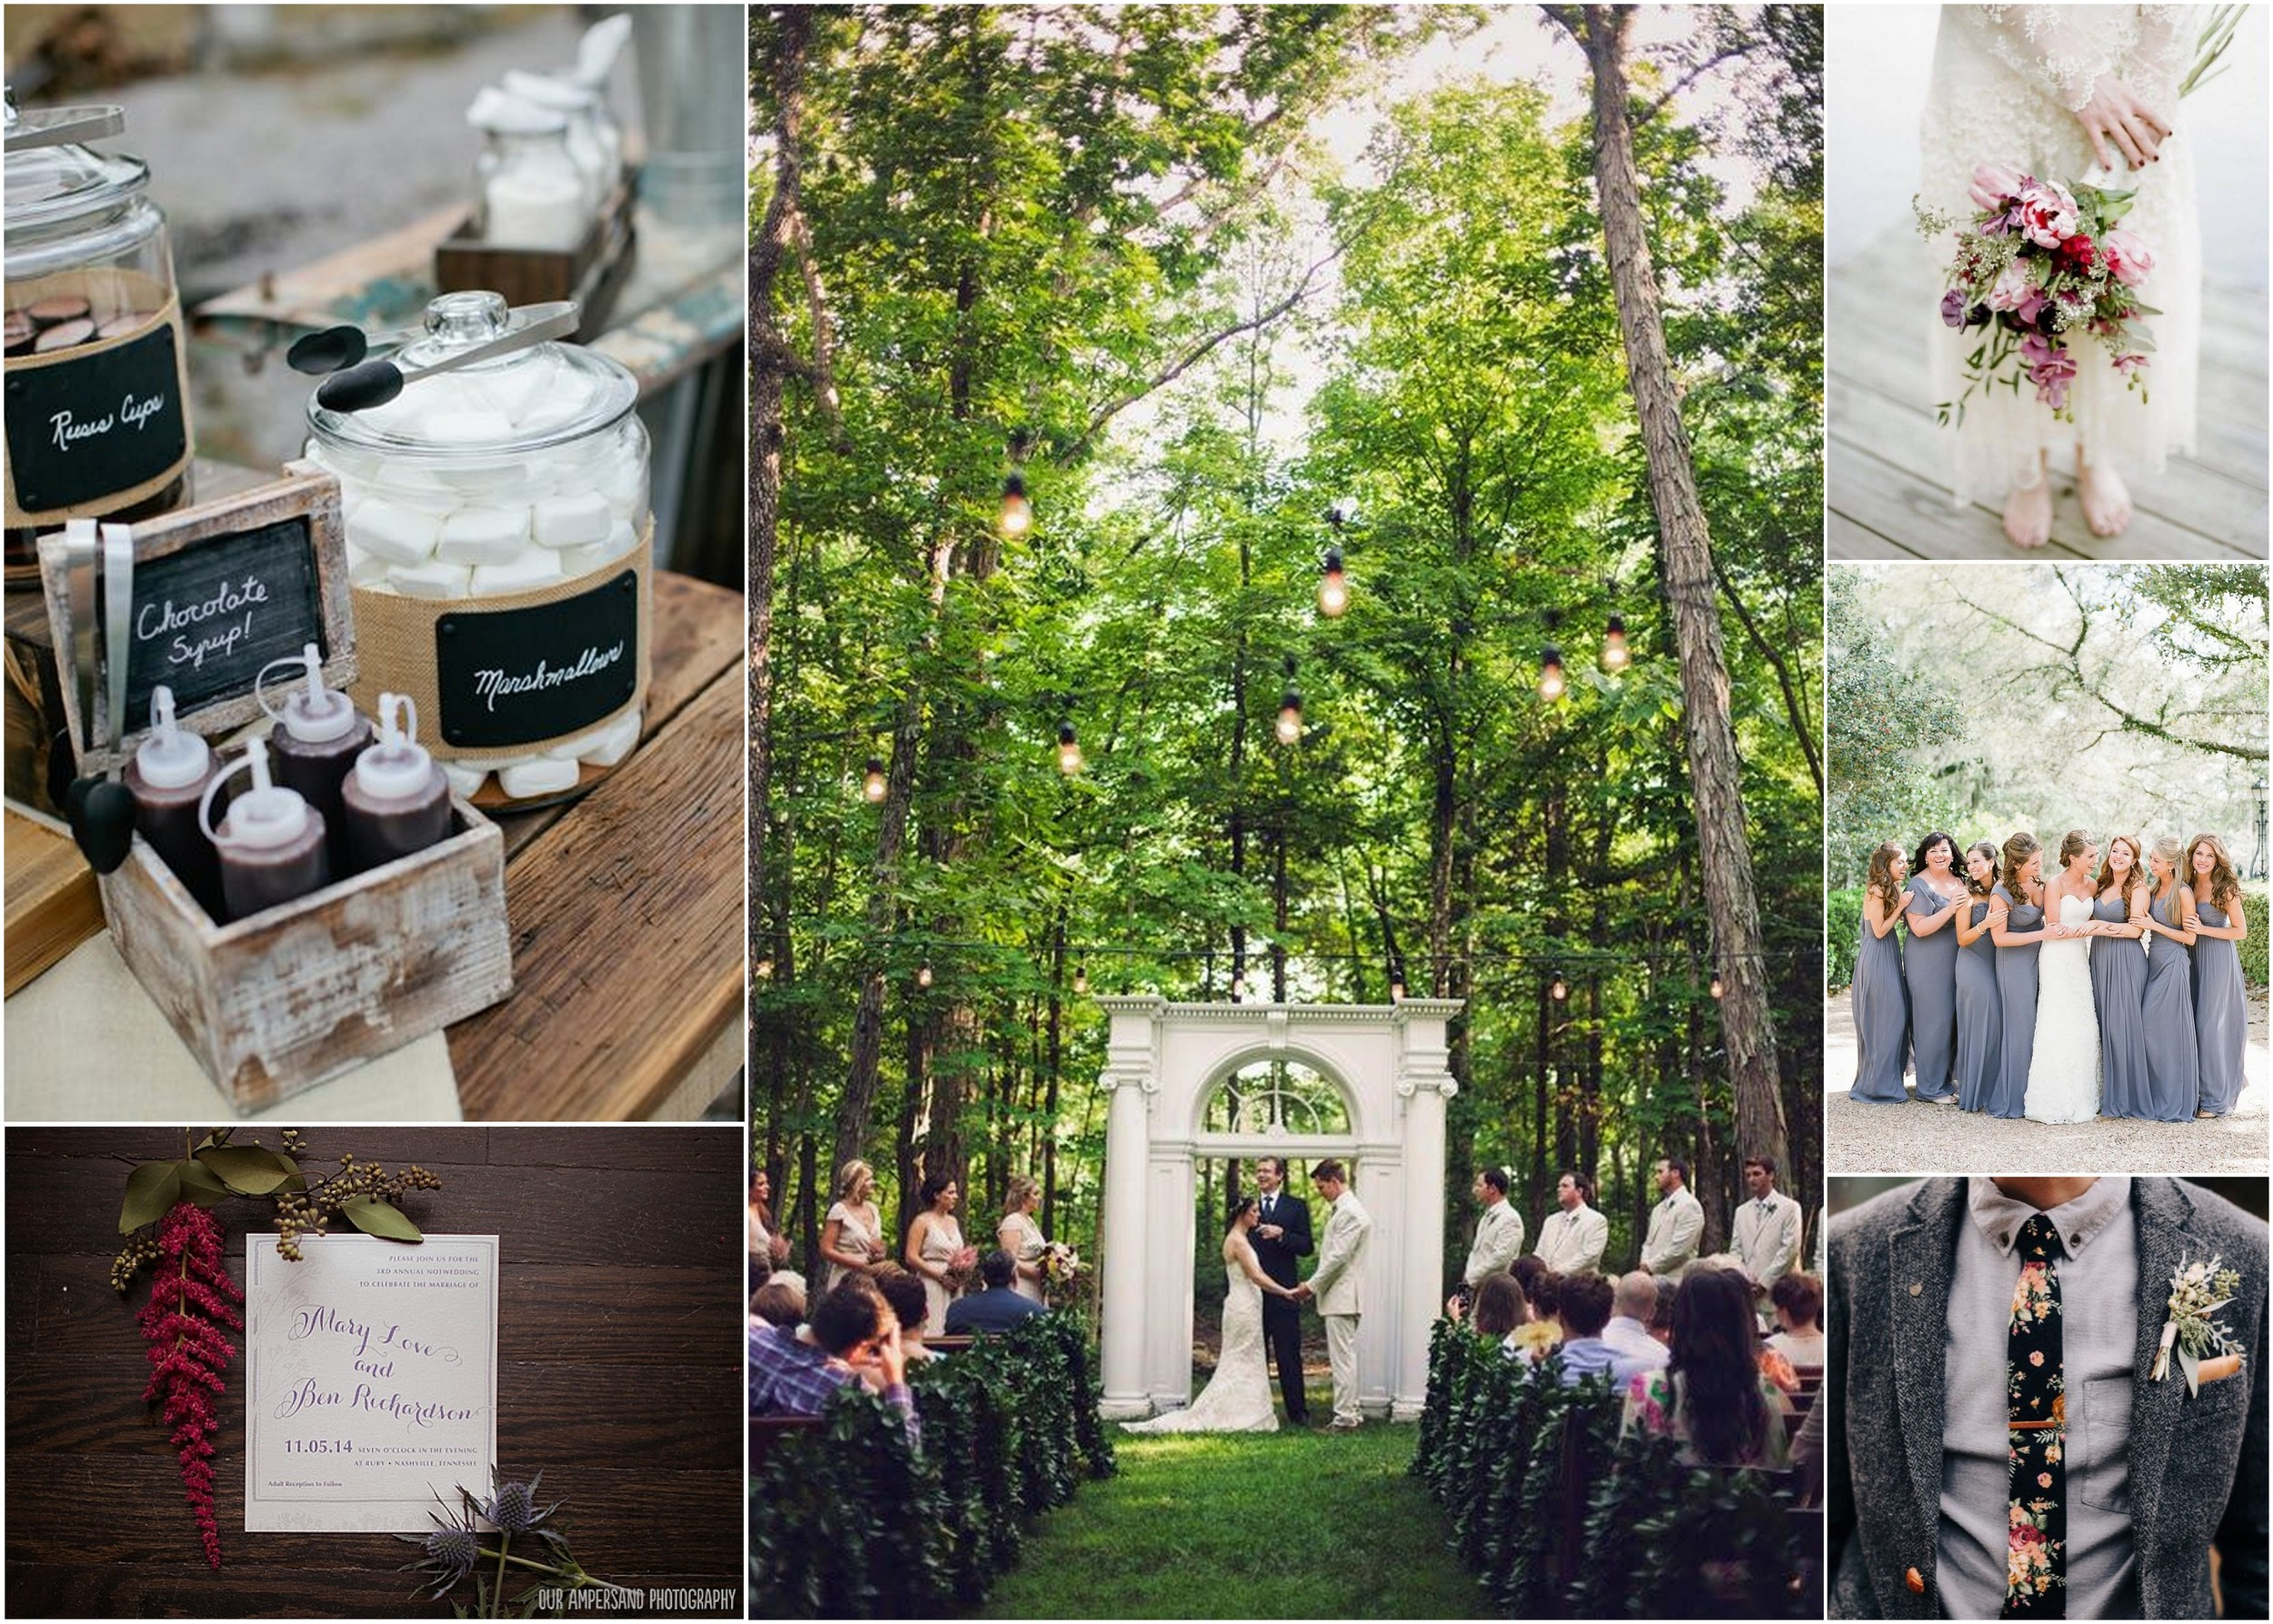 Photo credit: (TL)  Kristyn Hogan ; (BL)  Our Ampersand Photography ; (Center)  Krista Lee Photography ; (TR)  Jenna Henderson Photography ; (Middle) Southern Weddings Magazine ; (BR)  Green Wedding Shoes